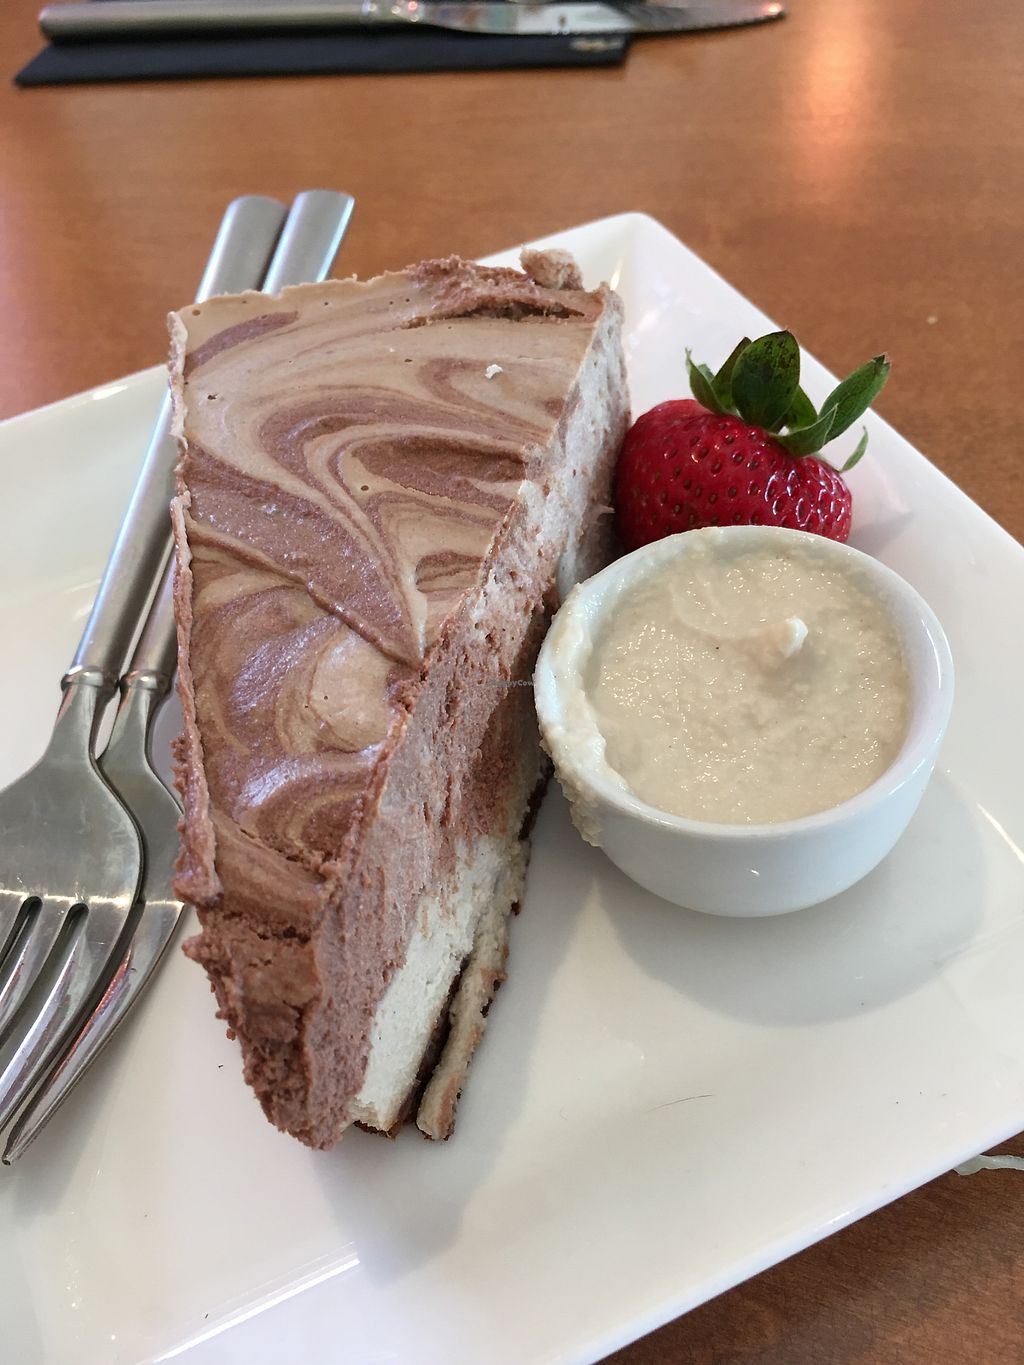 """Photo of Vibrance  by <a href=""""/members/profile/s7345565"""">s7345565</a> <br/>strawberry banana cheesecake with cashew sweet cream <br/> June 30, 2017  - <a href='/contact/abuse/image/77106/275230'>Report</a>"""